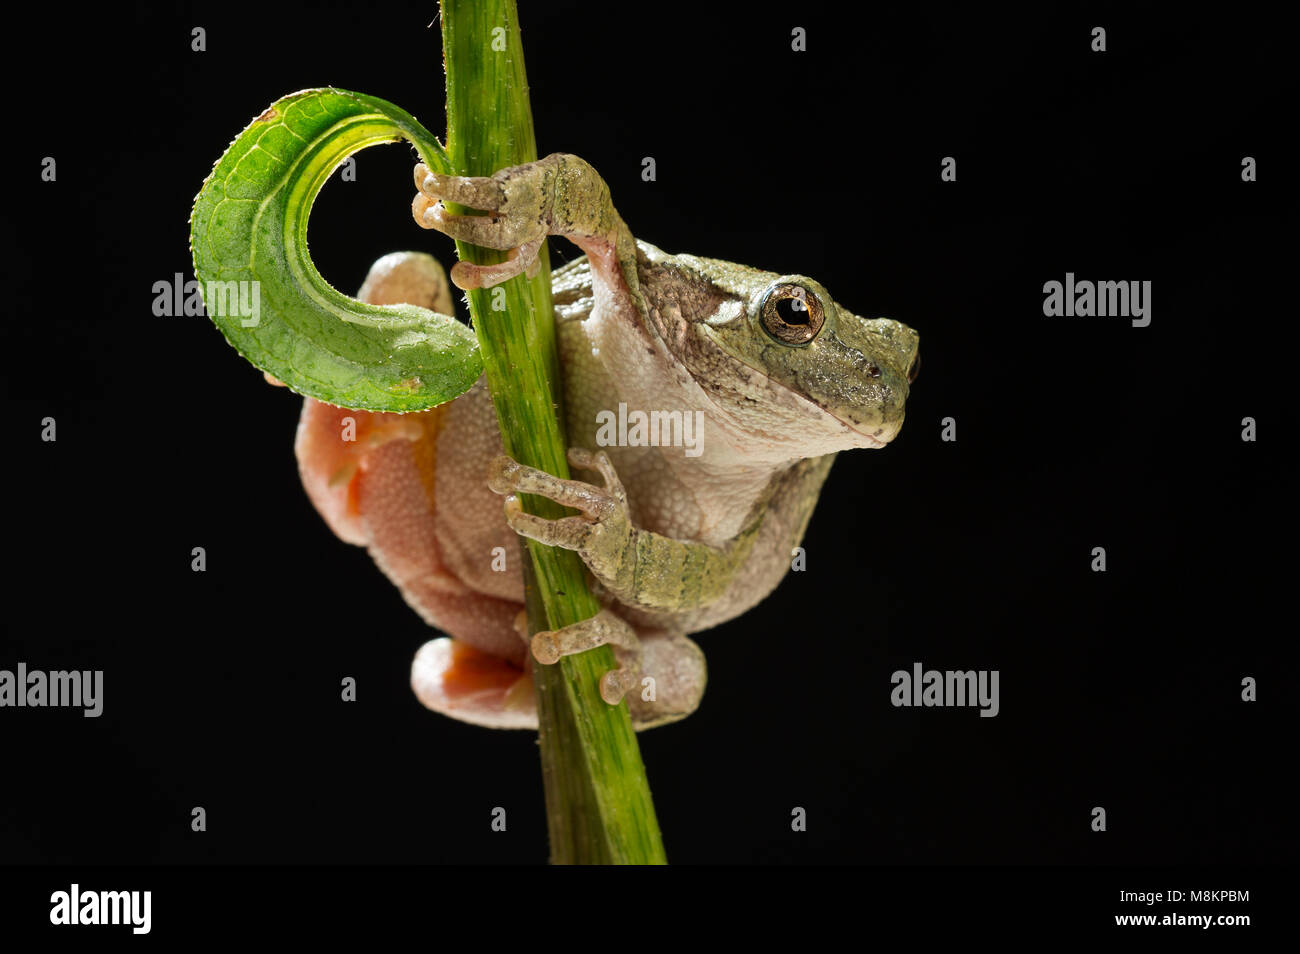 Gray Tree Frog (Hyla versicolor) on flowering cone flower (Echinacea purpurea), MN, USA by Dominique Braud/Dembinsky - Stock Image